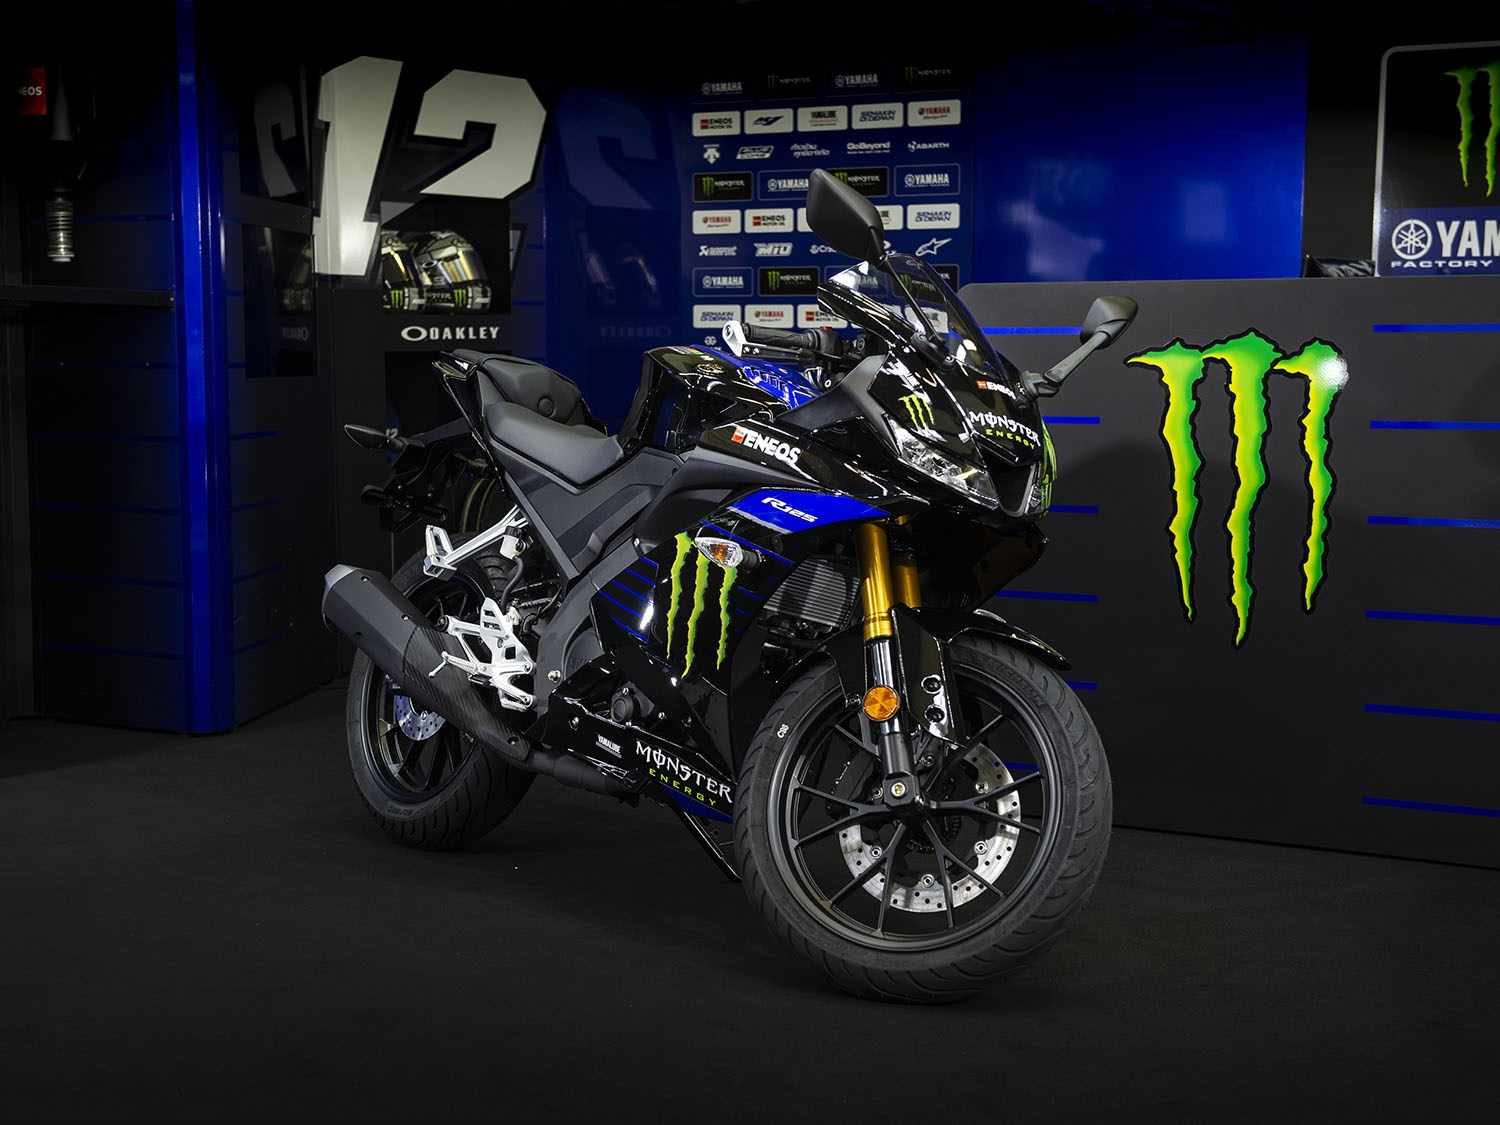 Yamaha Yzf R125 Monster Energy Motogp Edition Launched In The Uk